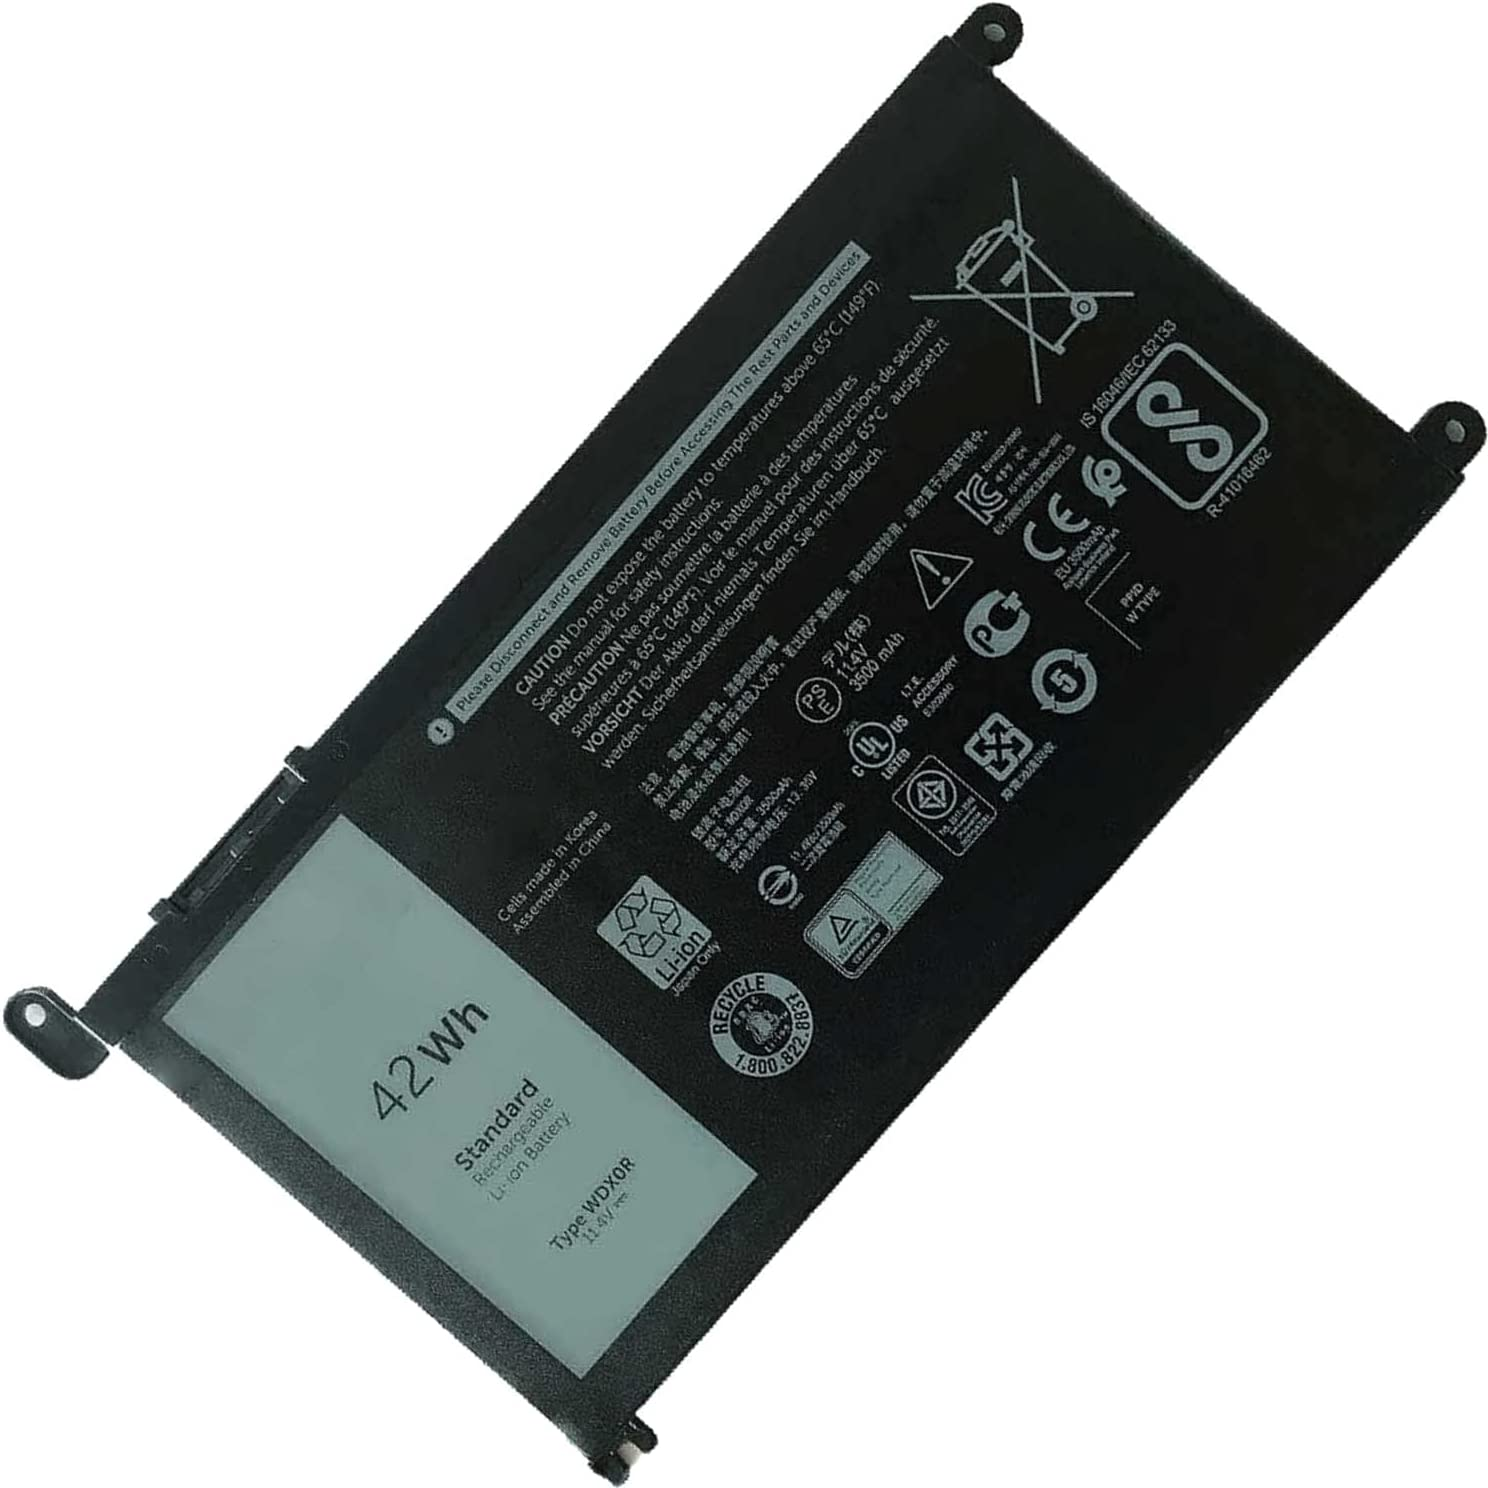 DELL WDX0R Notebook Battery for Dell Inspiron 15 5565 5567 5568 5578 5579 7560 7570 7573 7579 7580 7569 13 5368 5378 5379 7368 7378 14 7460 17 5765 5767 5770 Latitude 3480 3580 3490 11.4V 42Wh